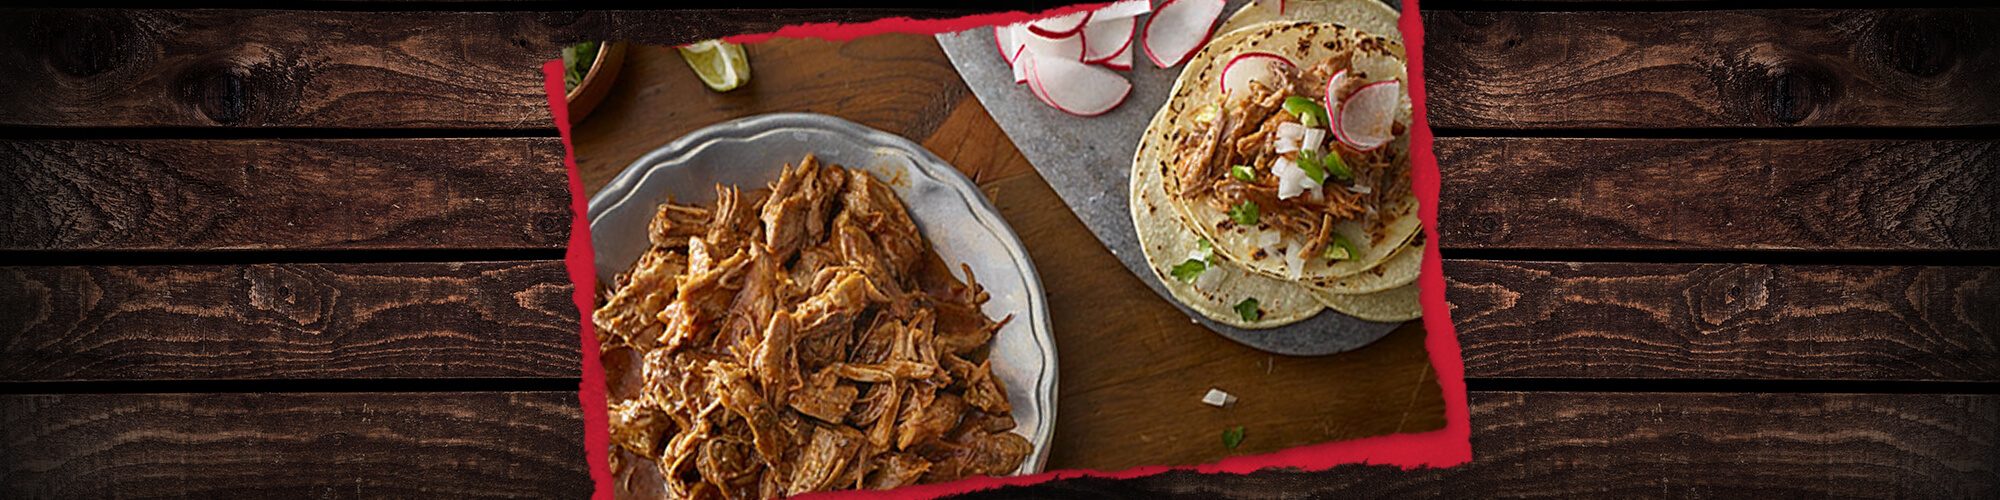 Slow Cooker Pulled Pork Rojo Tacos